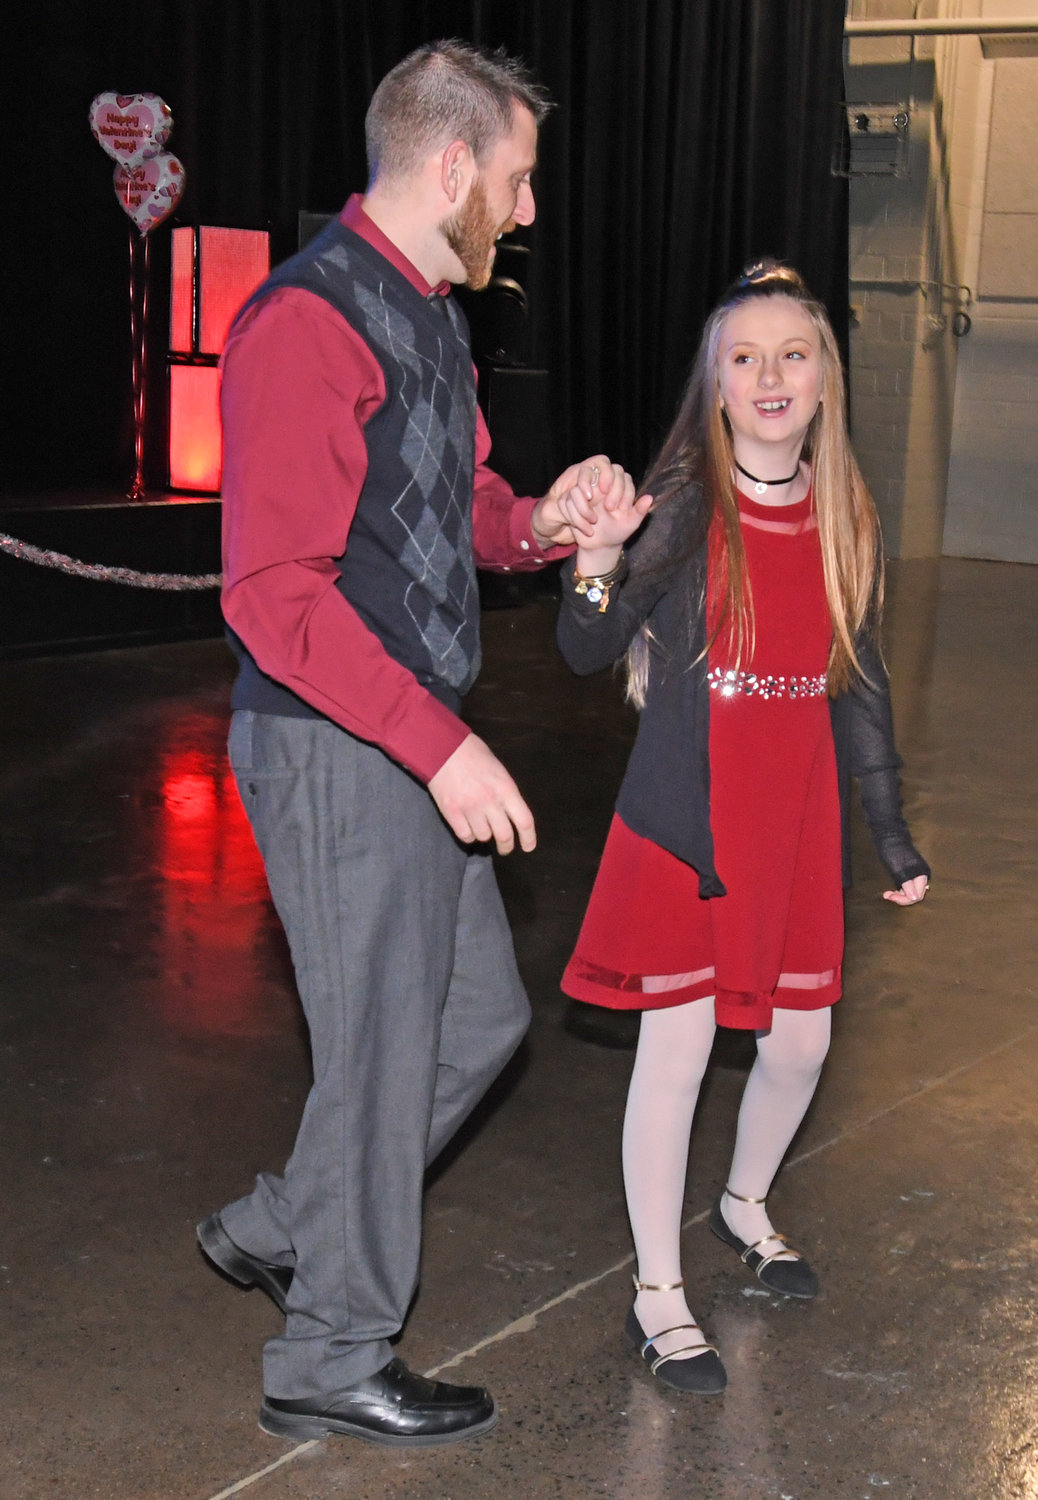 Cutting The Rug At Sweetheart Dance